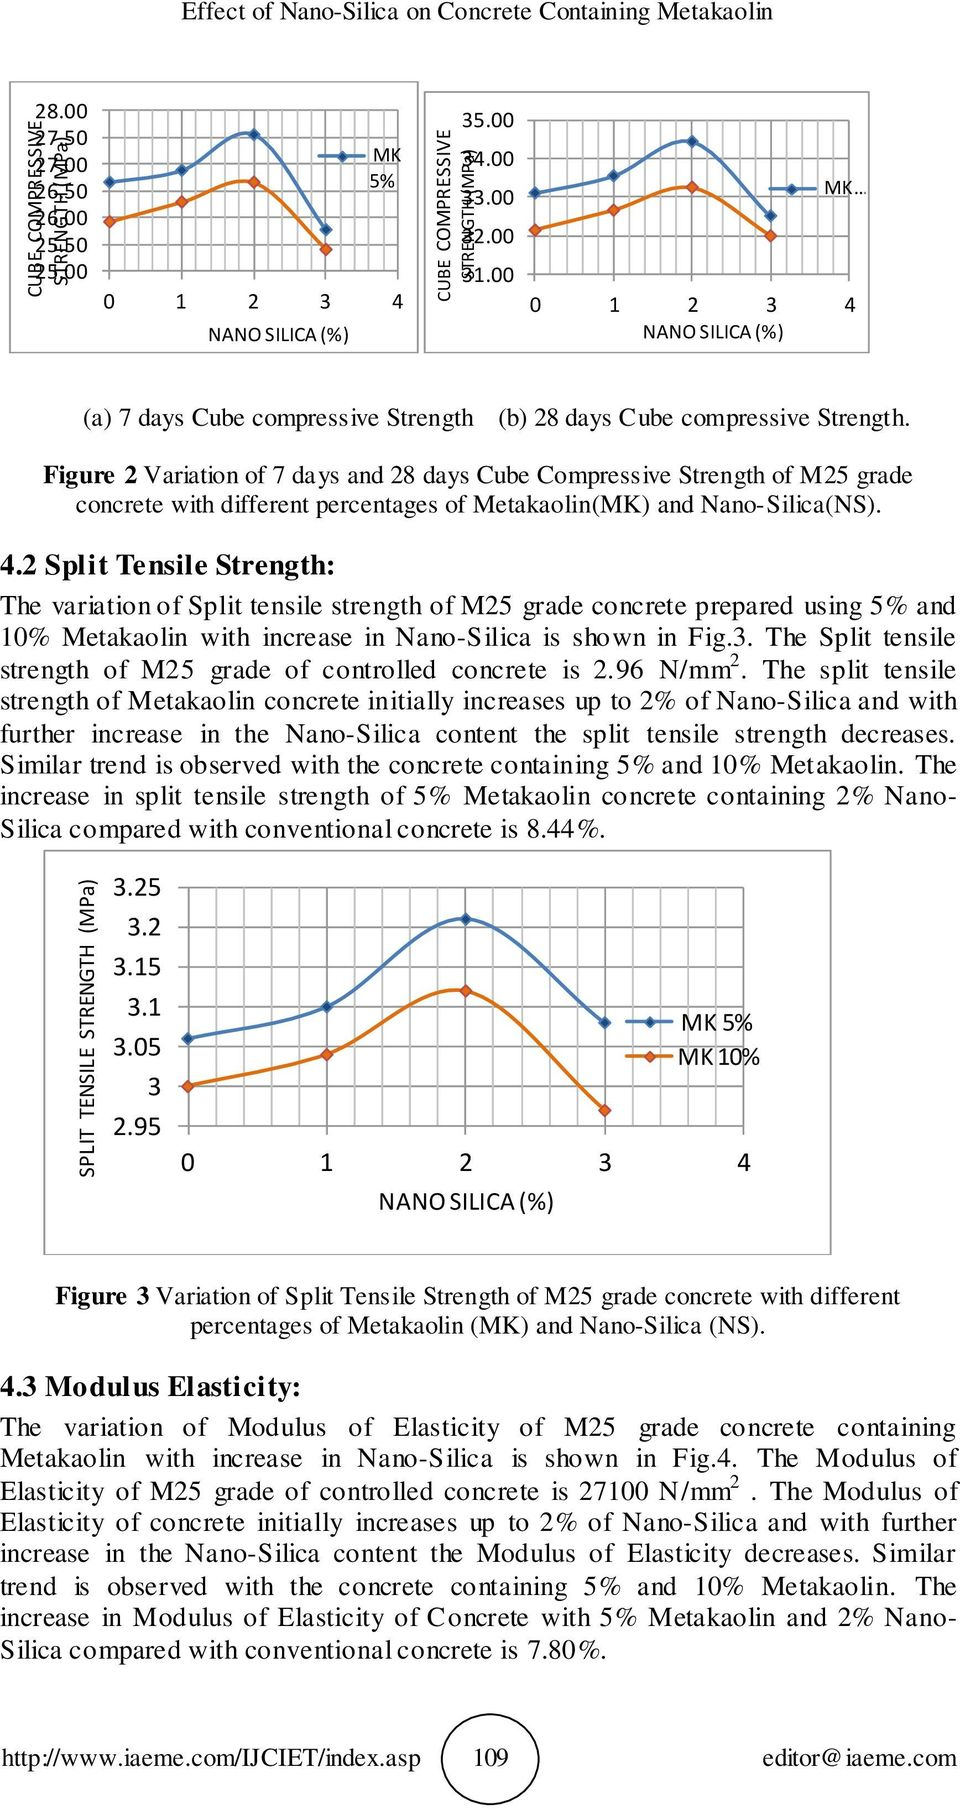 Figure 2 Variation of 7 days and 28 days Cube Compressive Strength of M25 grade concrete with different percentages of Metakaolin(MK) and Nano-Silica(NS). 4.